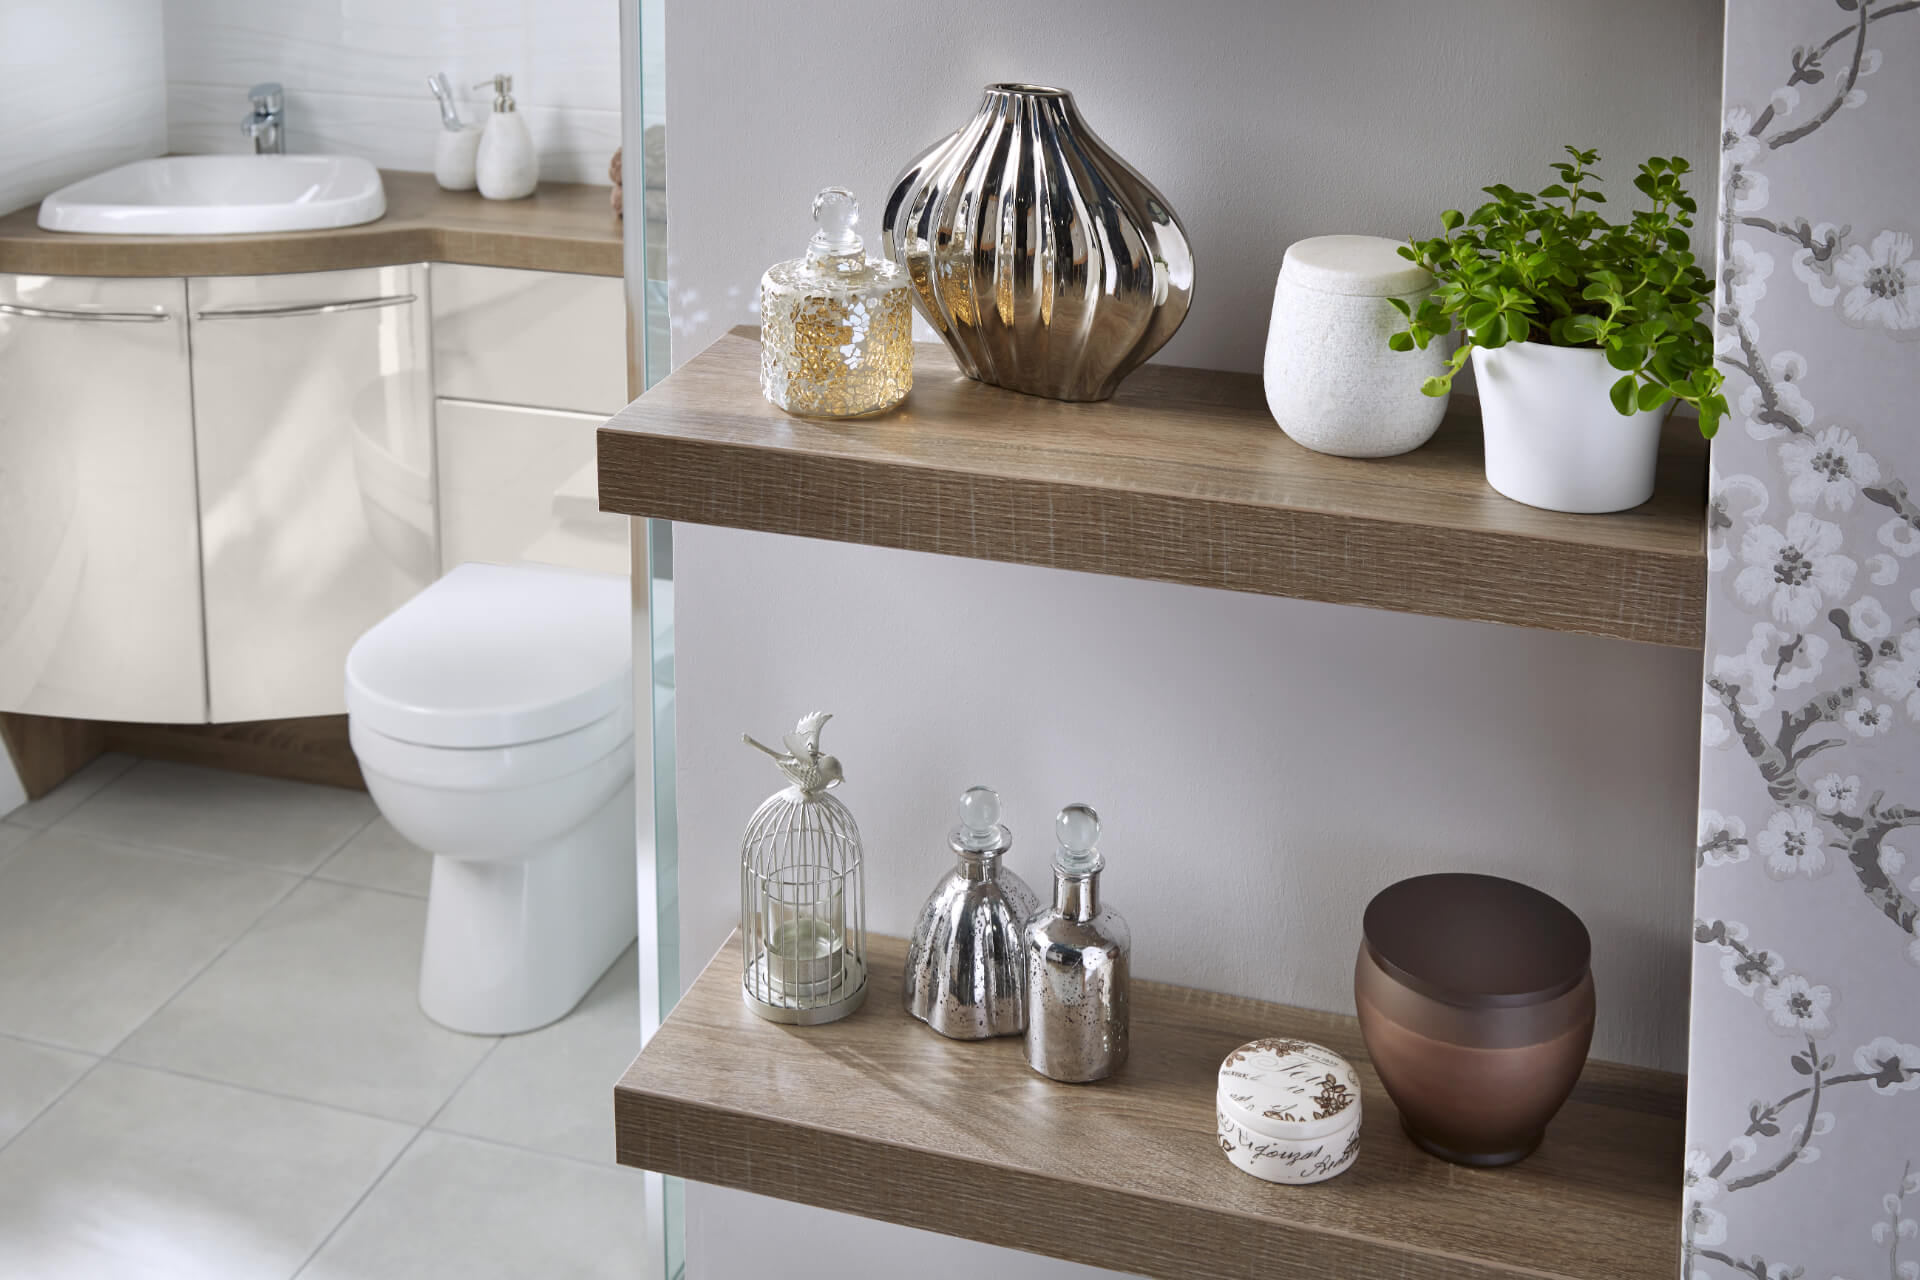 Utopia Bathroom Symmetry Wooden Shevles